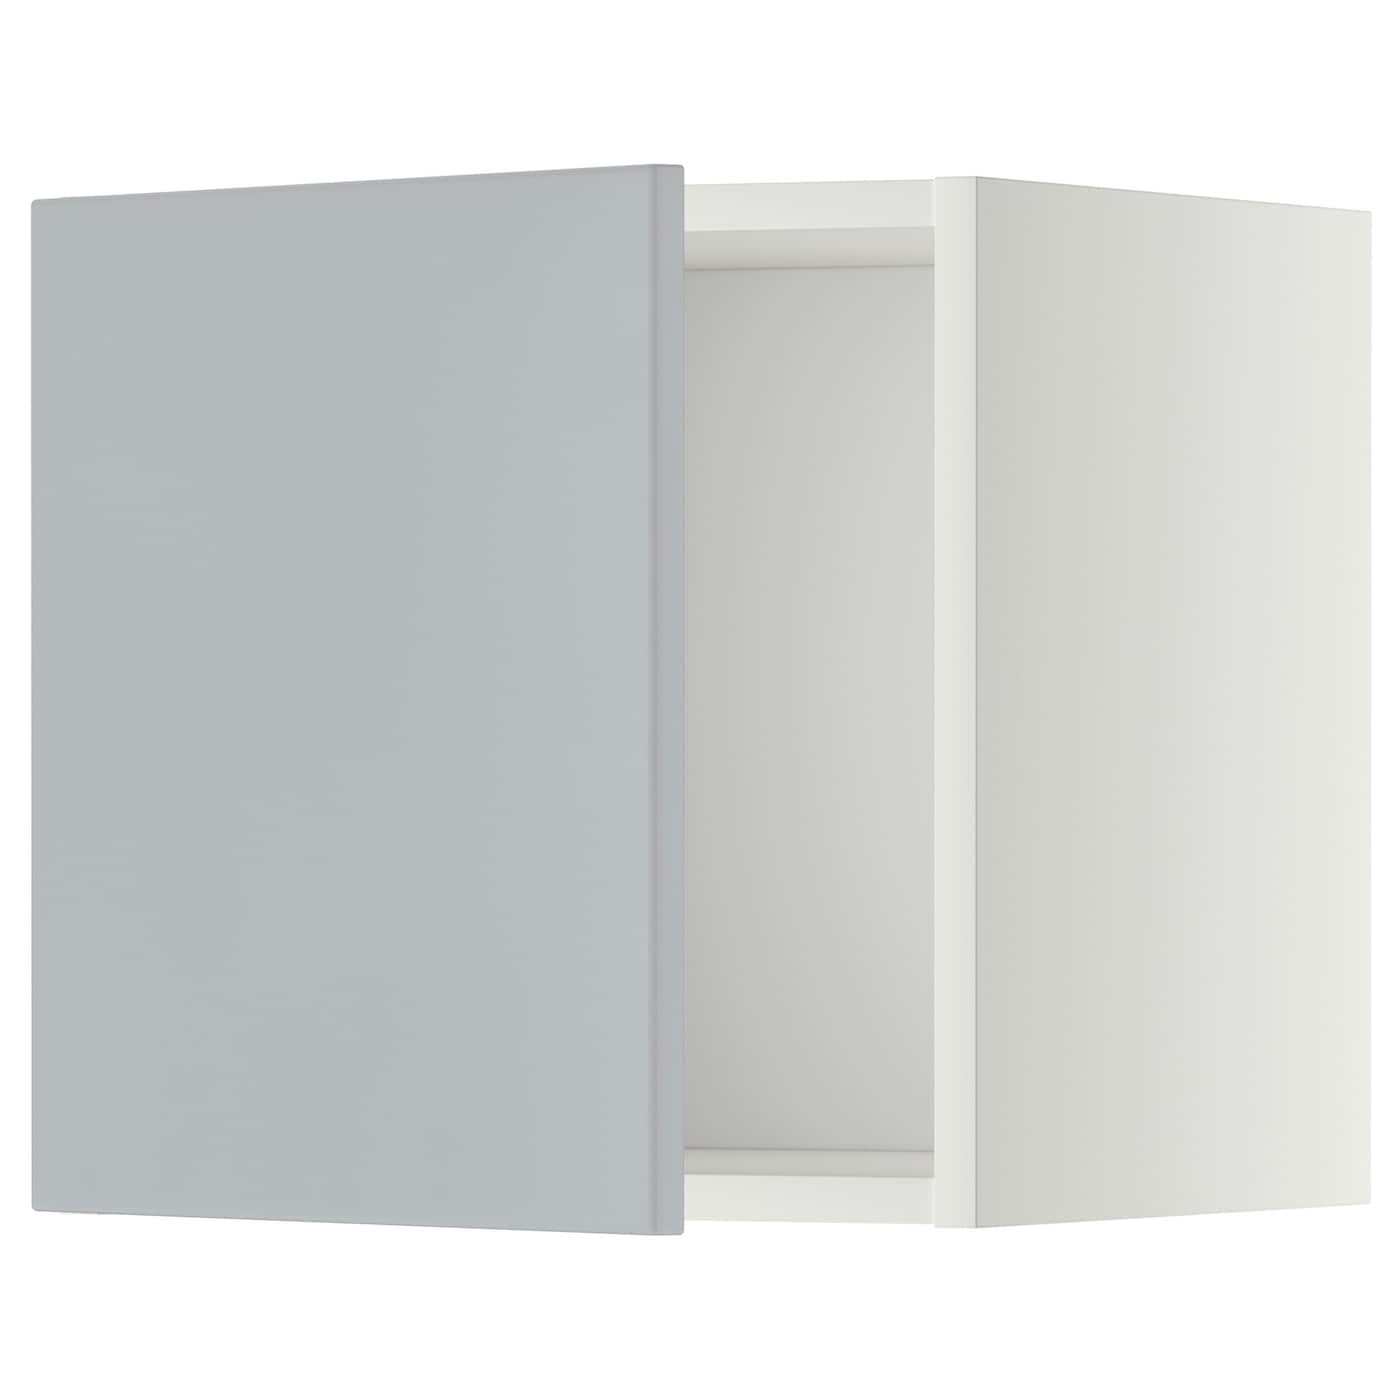 metod wall cabinet white veddinge grey 40x40 cm ikea. Black Bedroom Furniture Sets. Home Design Ideas